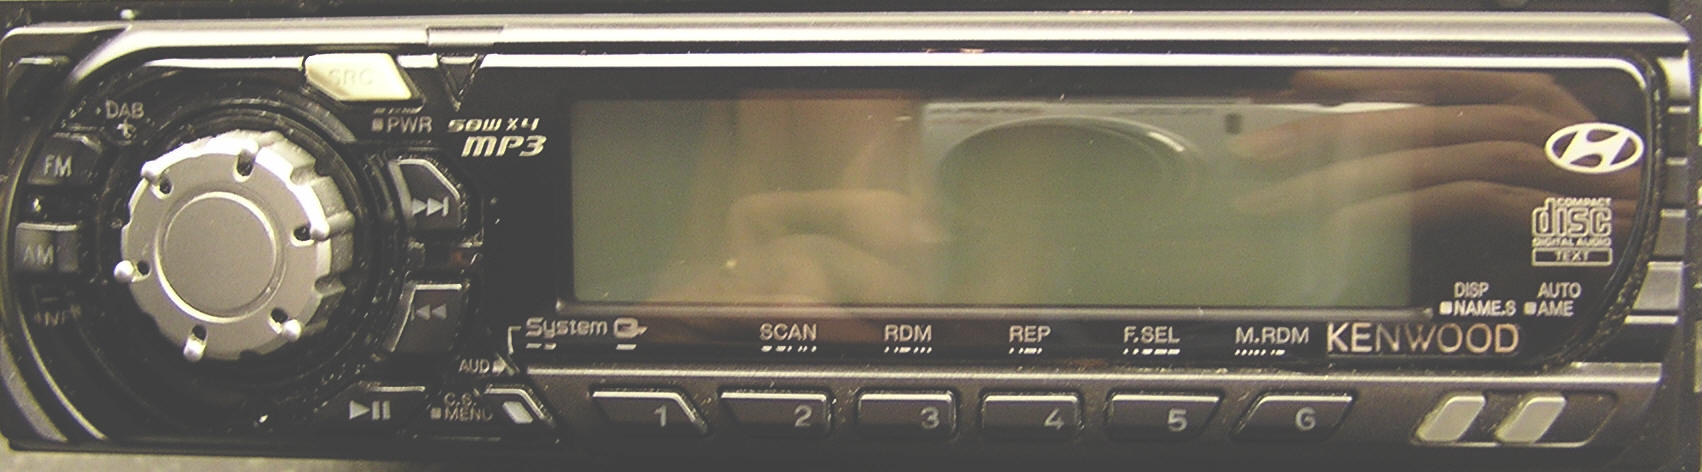 Hyundai Elantra Car Radio Removal and Repair